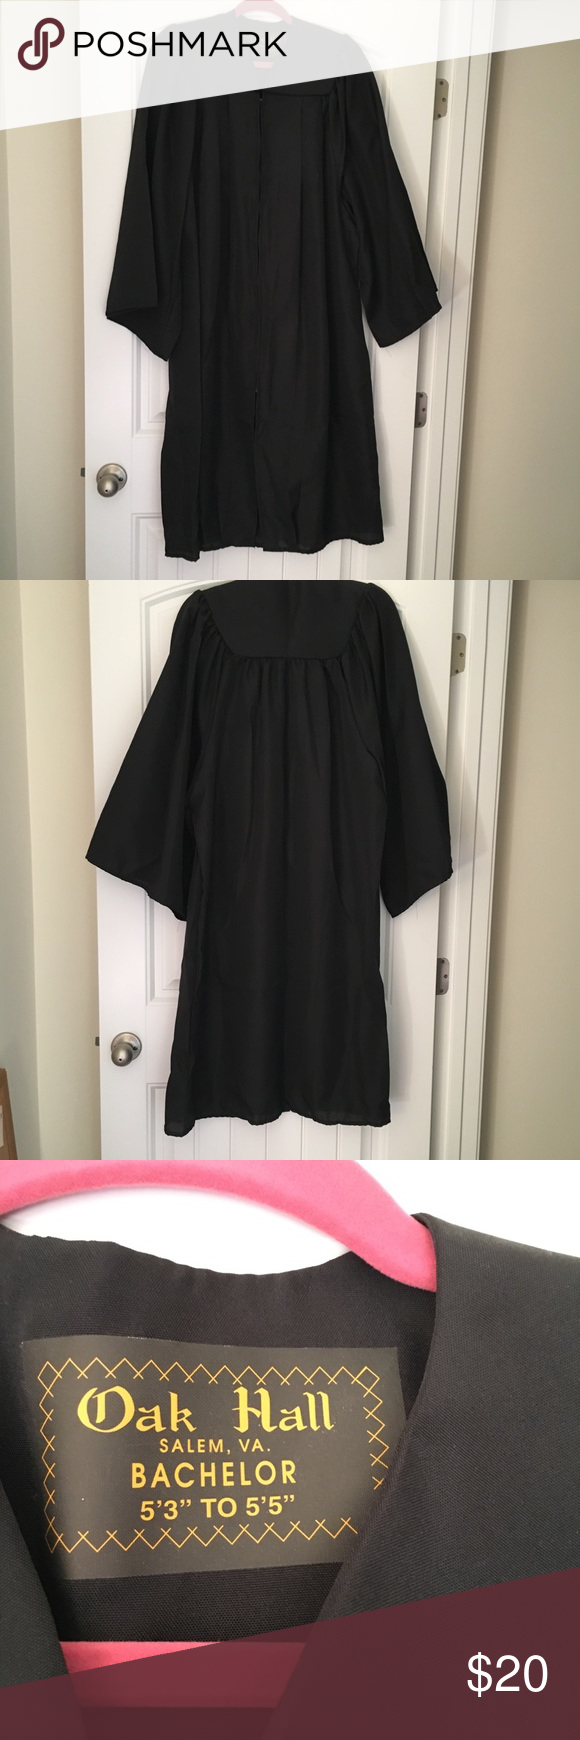 """Black Graduation Gown - height 5\'3"""" - 5\'5"""" 